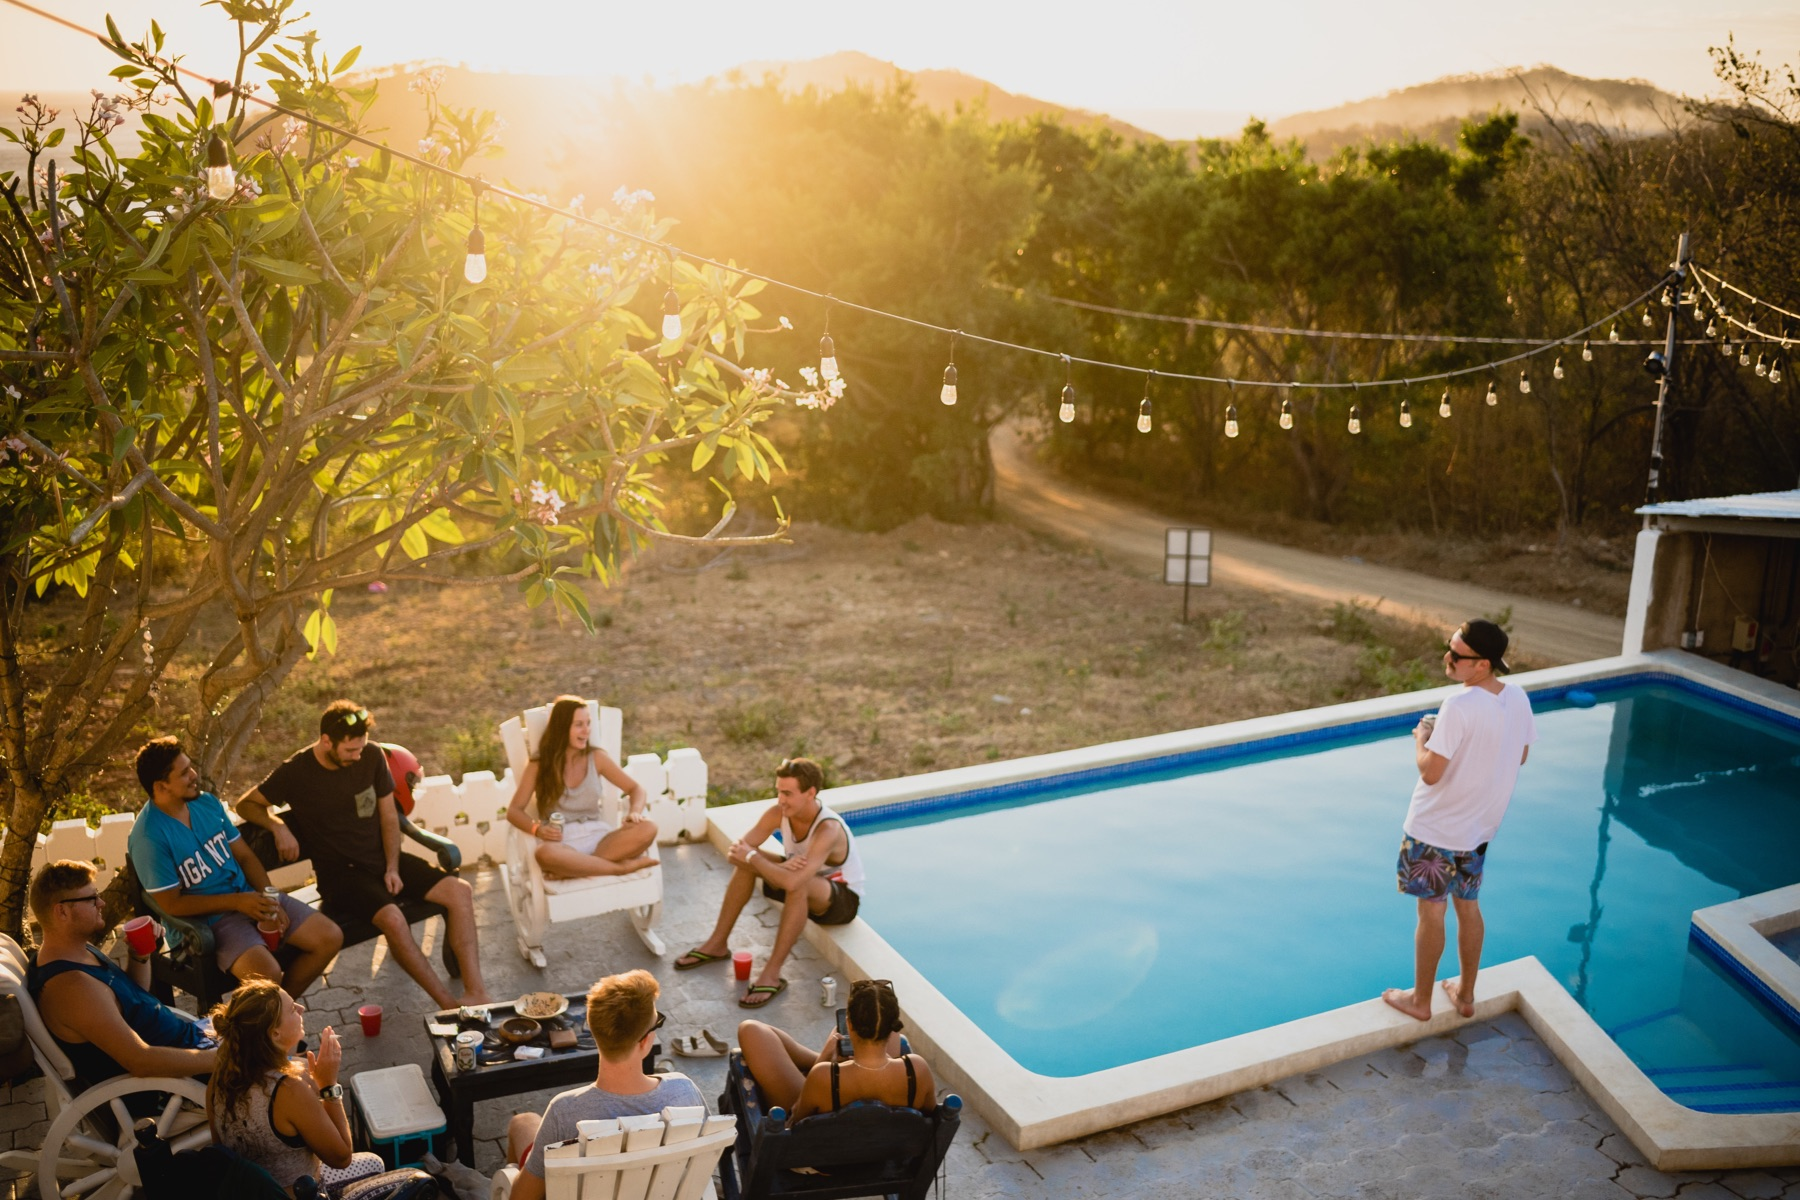 Bringing the fun outdoors: A guide to outdoor party ideas